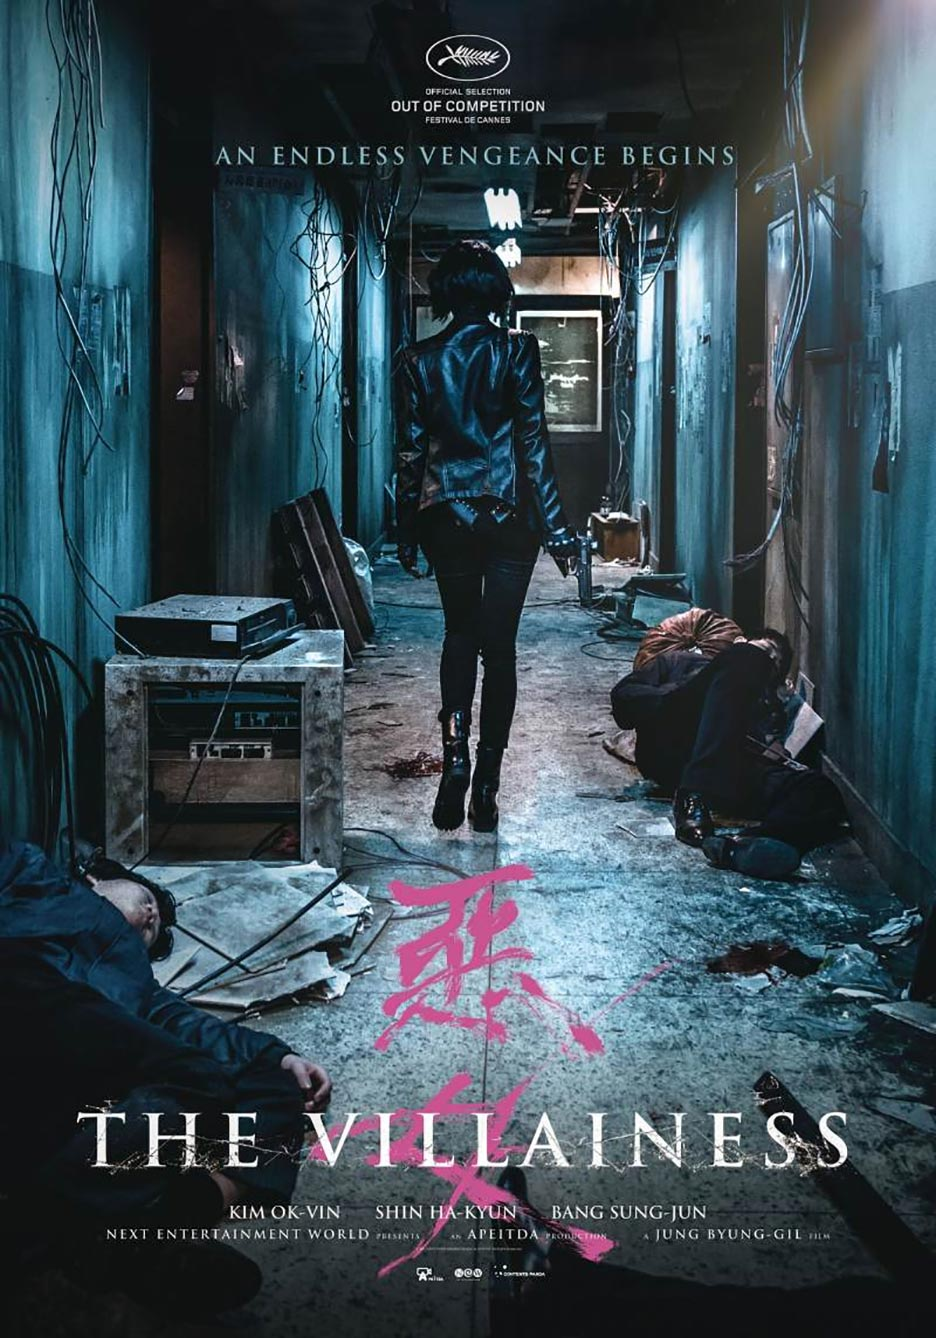 [FFF] The Villainess